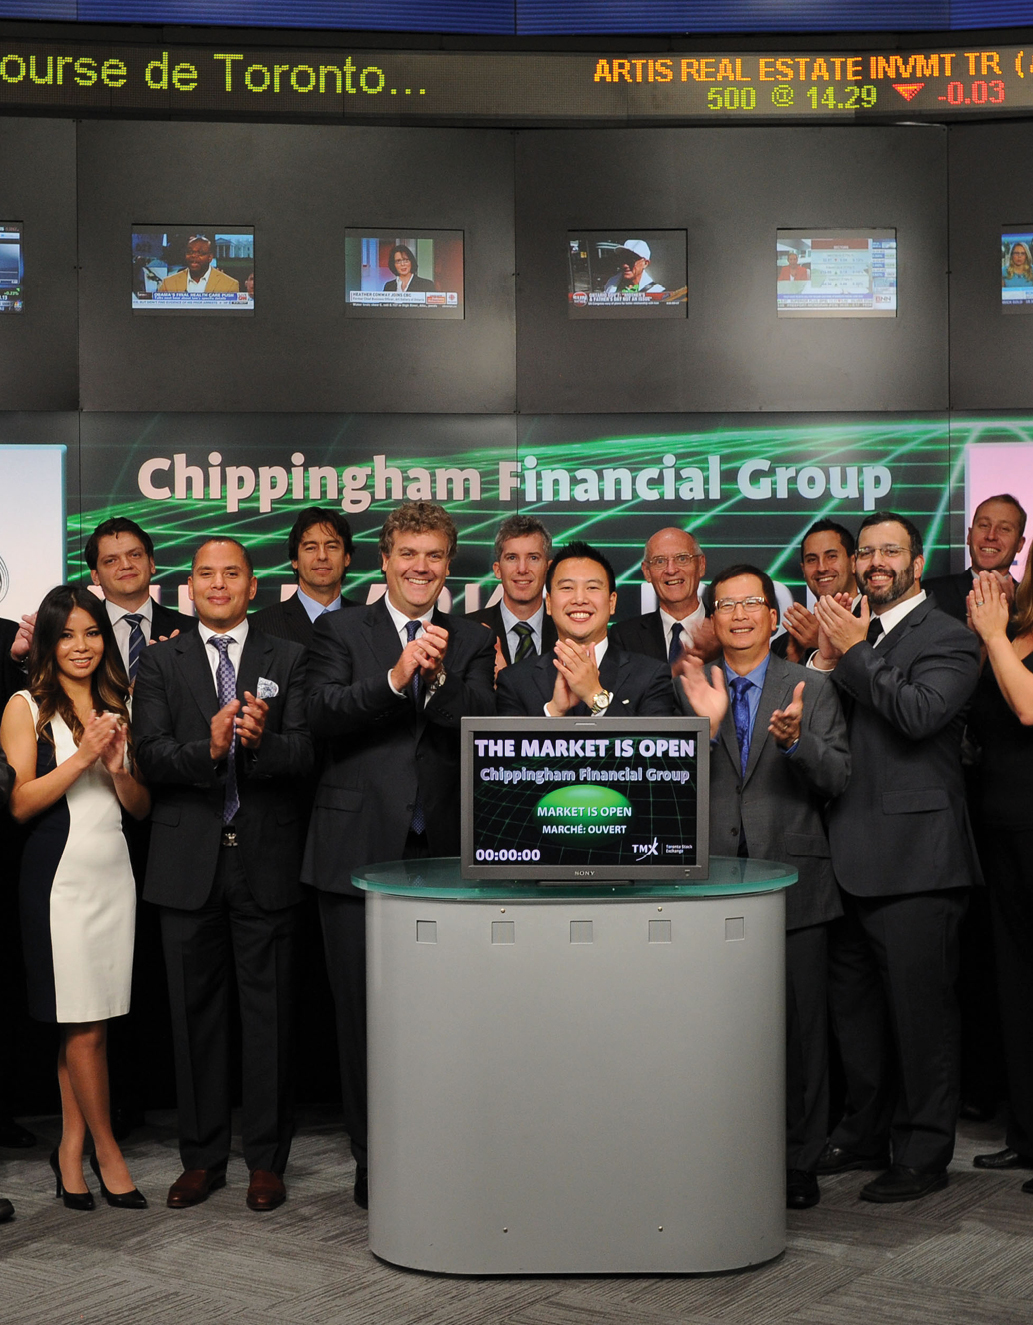 Chippingham_Financial_Group_831032675